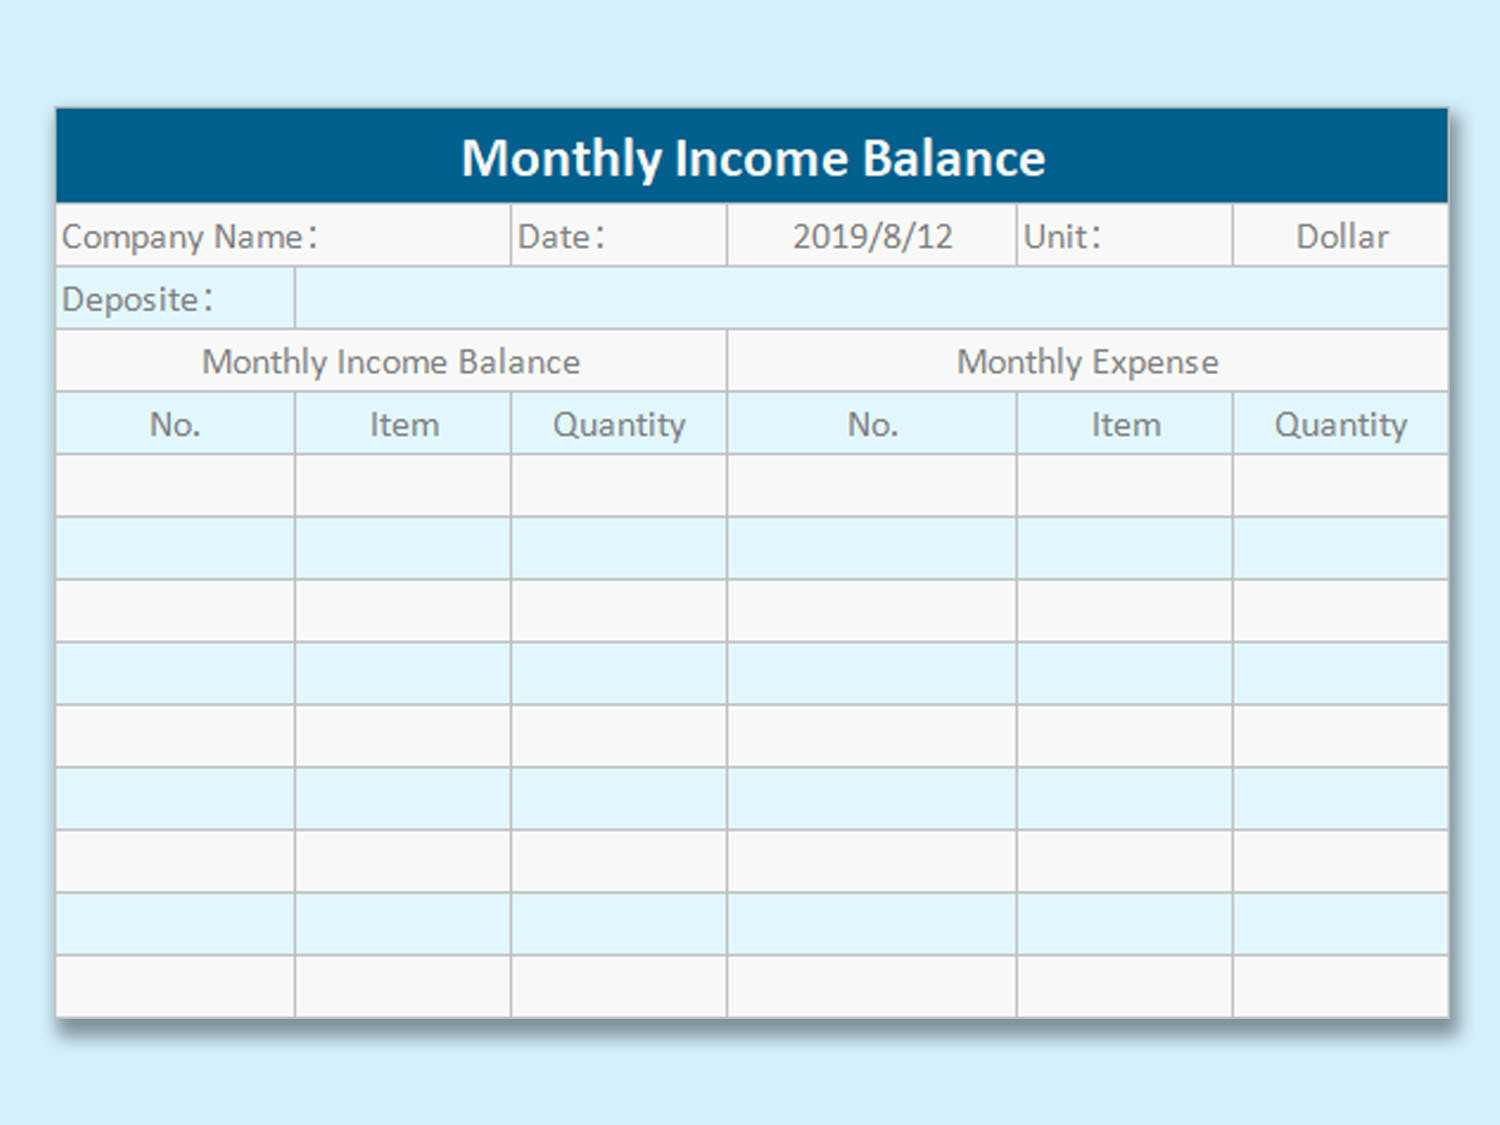 Basic Monthly Budget Worksheet, personal monthly budget, monthly budget excel spreadsheet template, dave ramsey monthly budget, how does a monthly budget worksheet help you, monthly meal plan on a budget, monthly budget percentages, creating a monthly budget, monthly budget excel template, monthly budget spreadsheet excel, how does a monthly budget worksheet help you?, average monthly food budget, monthly budget chart, excel monthly budget, budget monthly rental, best monthly budget app, monthly budget planner excel, simple monthly budget, monthly household budget, create a monthly budget, monthly grocery budget for 1, sample monthly budget, average monthly budget for a single person, monthly budget plan, budget monthly expenses, monthly budget example, free monthly budget spreadsheet, monthly grocery budget for 2, etta wants to make a monthly budget. what should she do first?, budget calculator monthly, when preparing a monthly budget, describe how net income is calculated., monthly food budget one person, example monthly budget, monthly food budget for 2, monthly budget book, monthly budget list, monthly household budget worksheet, personal monthly budget template excel, how to create a monthly budget in excel, free monthly budget planner, average monthly budget, making a monthly budget, personal monthly budget calculator, how to do a monthly budget, simple monthly budget excel, budget monthly rentals, online monthly budget planner, best monthly budget apps, monthly budget planner by trevor jones, basic monthly budget, monthly budget dave ramsey